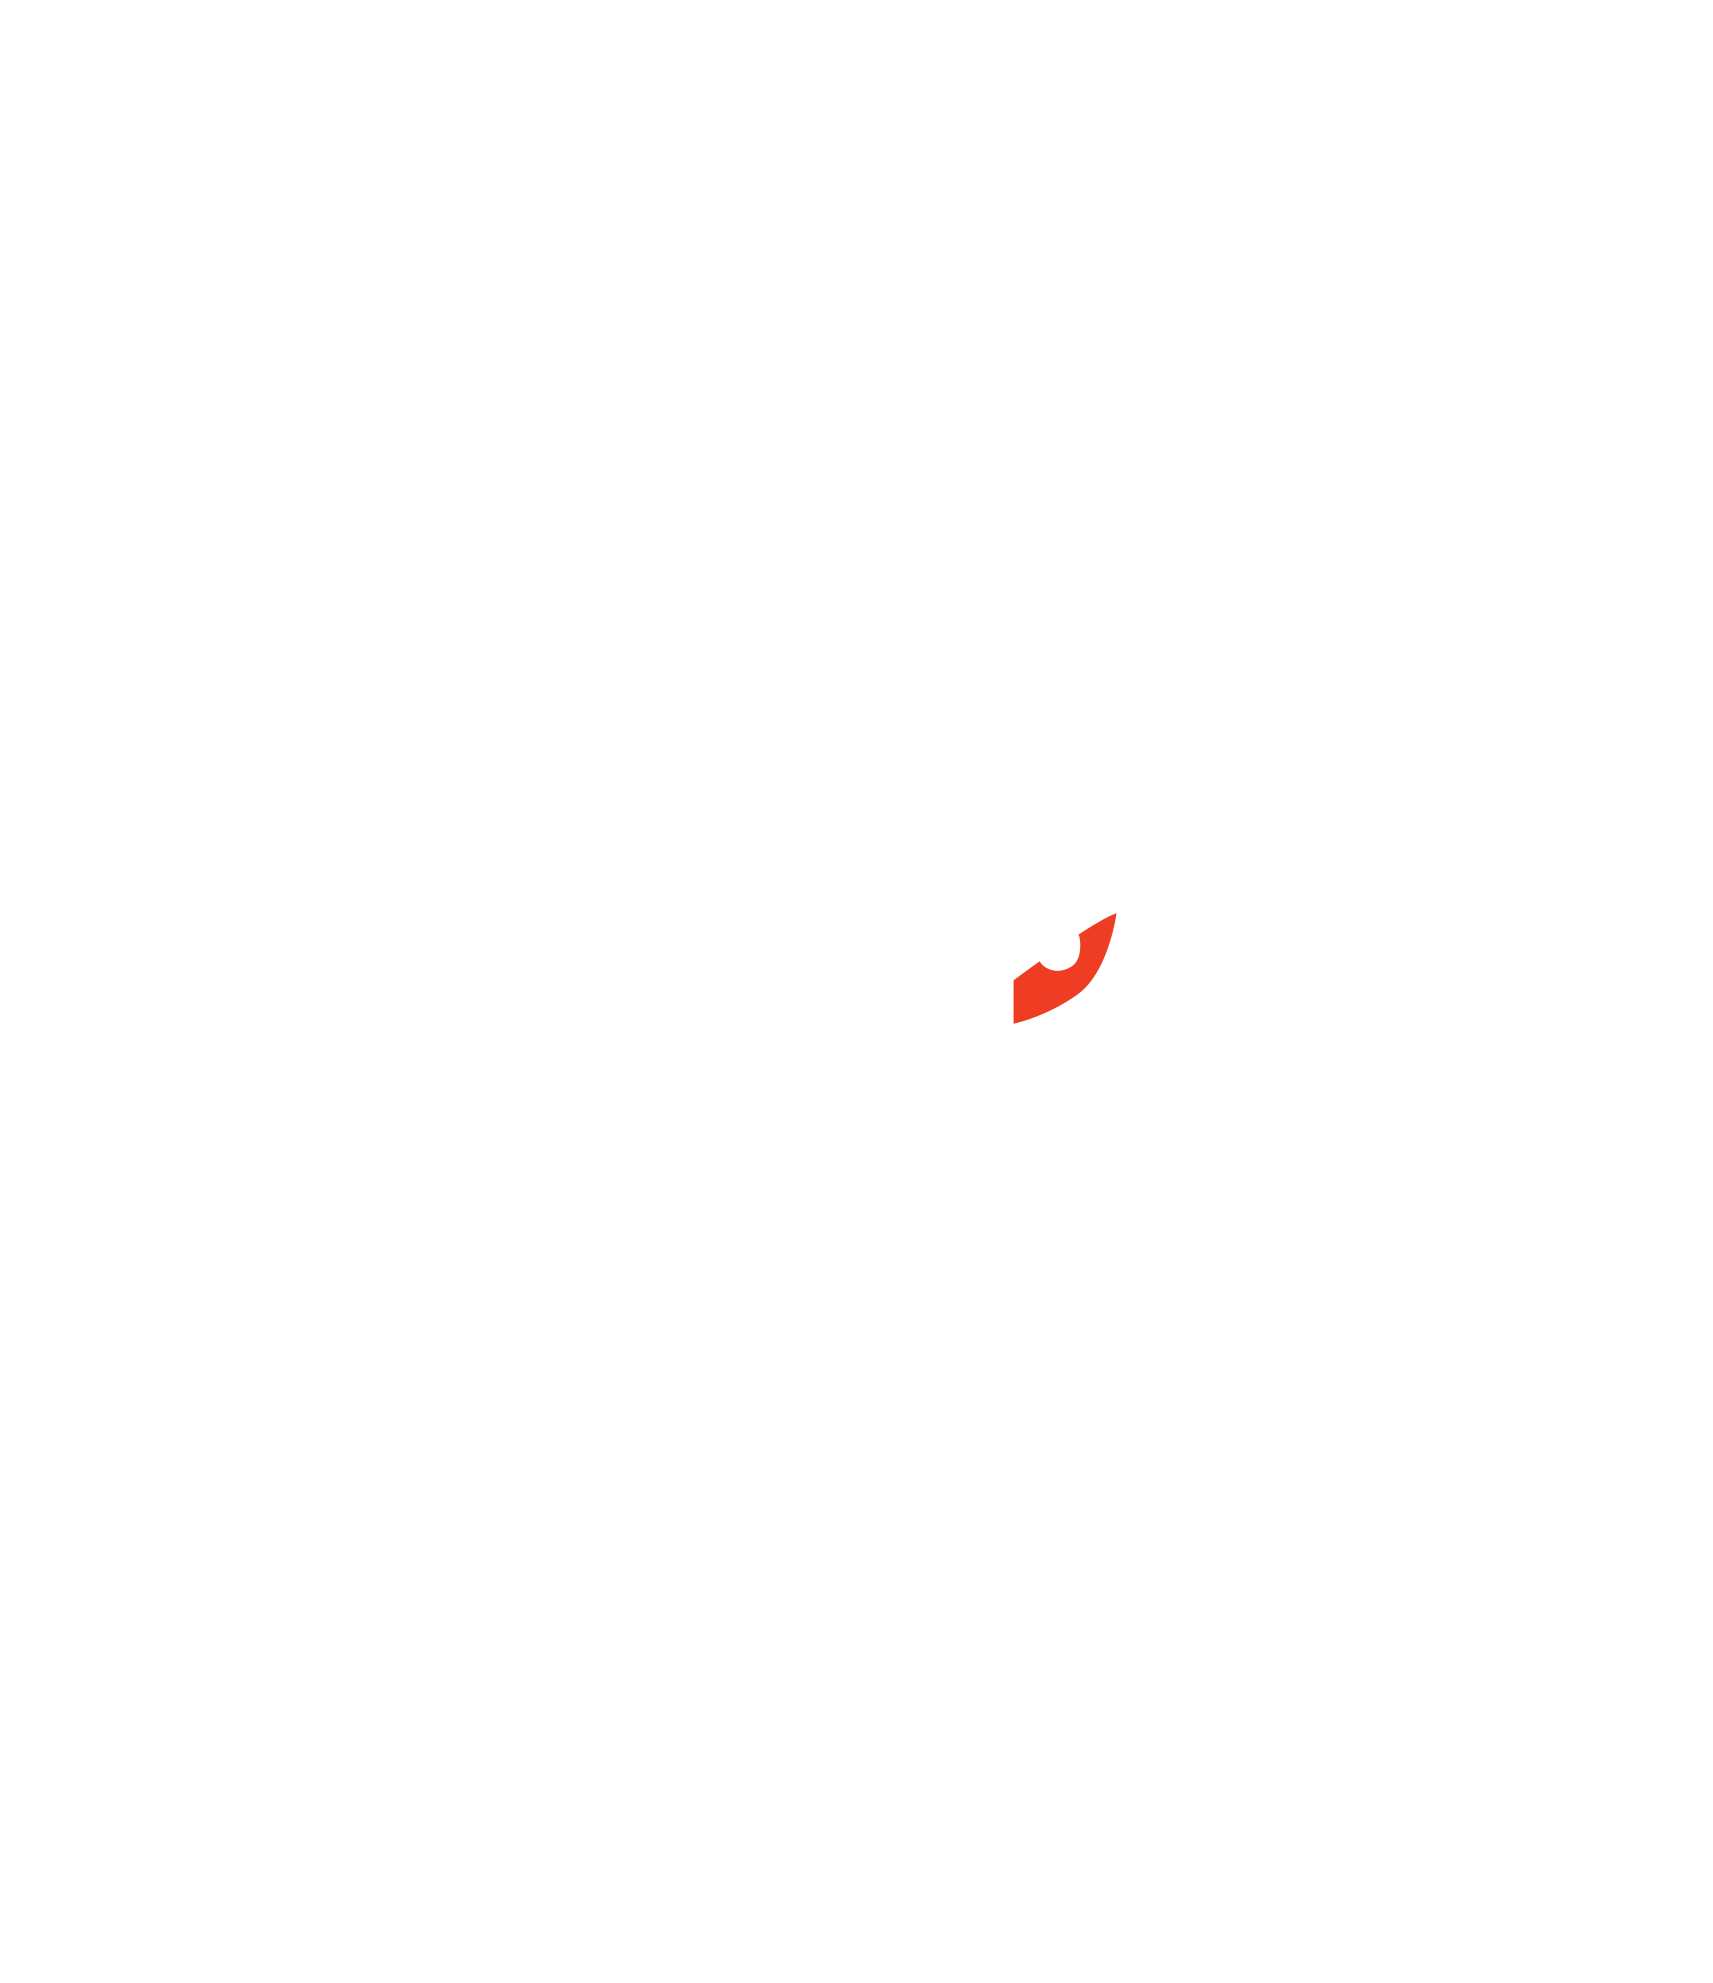 G2 Esports League of Legends Team